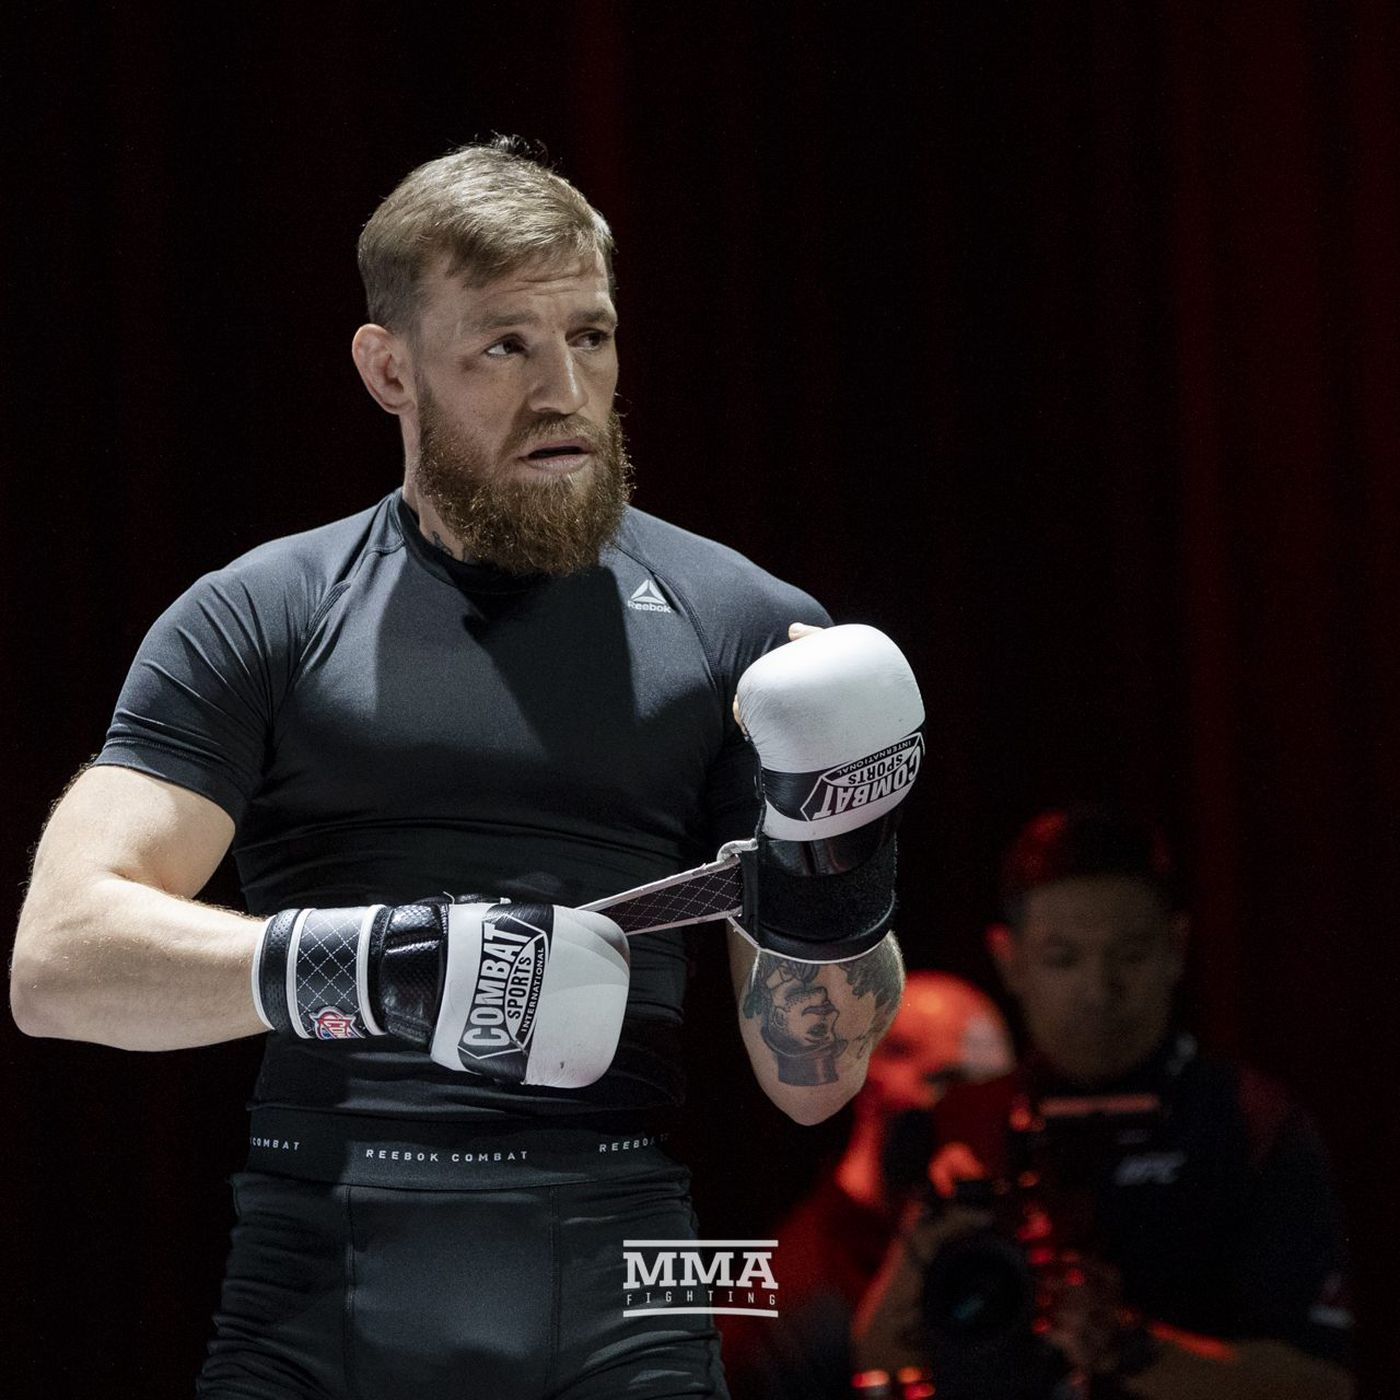 ff76ee59fc018b Conor McGregor reacts to NAC fine and suspension   I look forward to  competing again soon